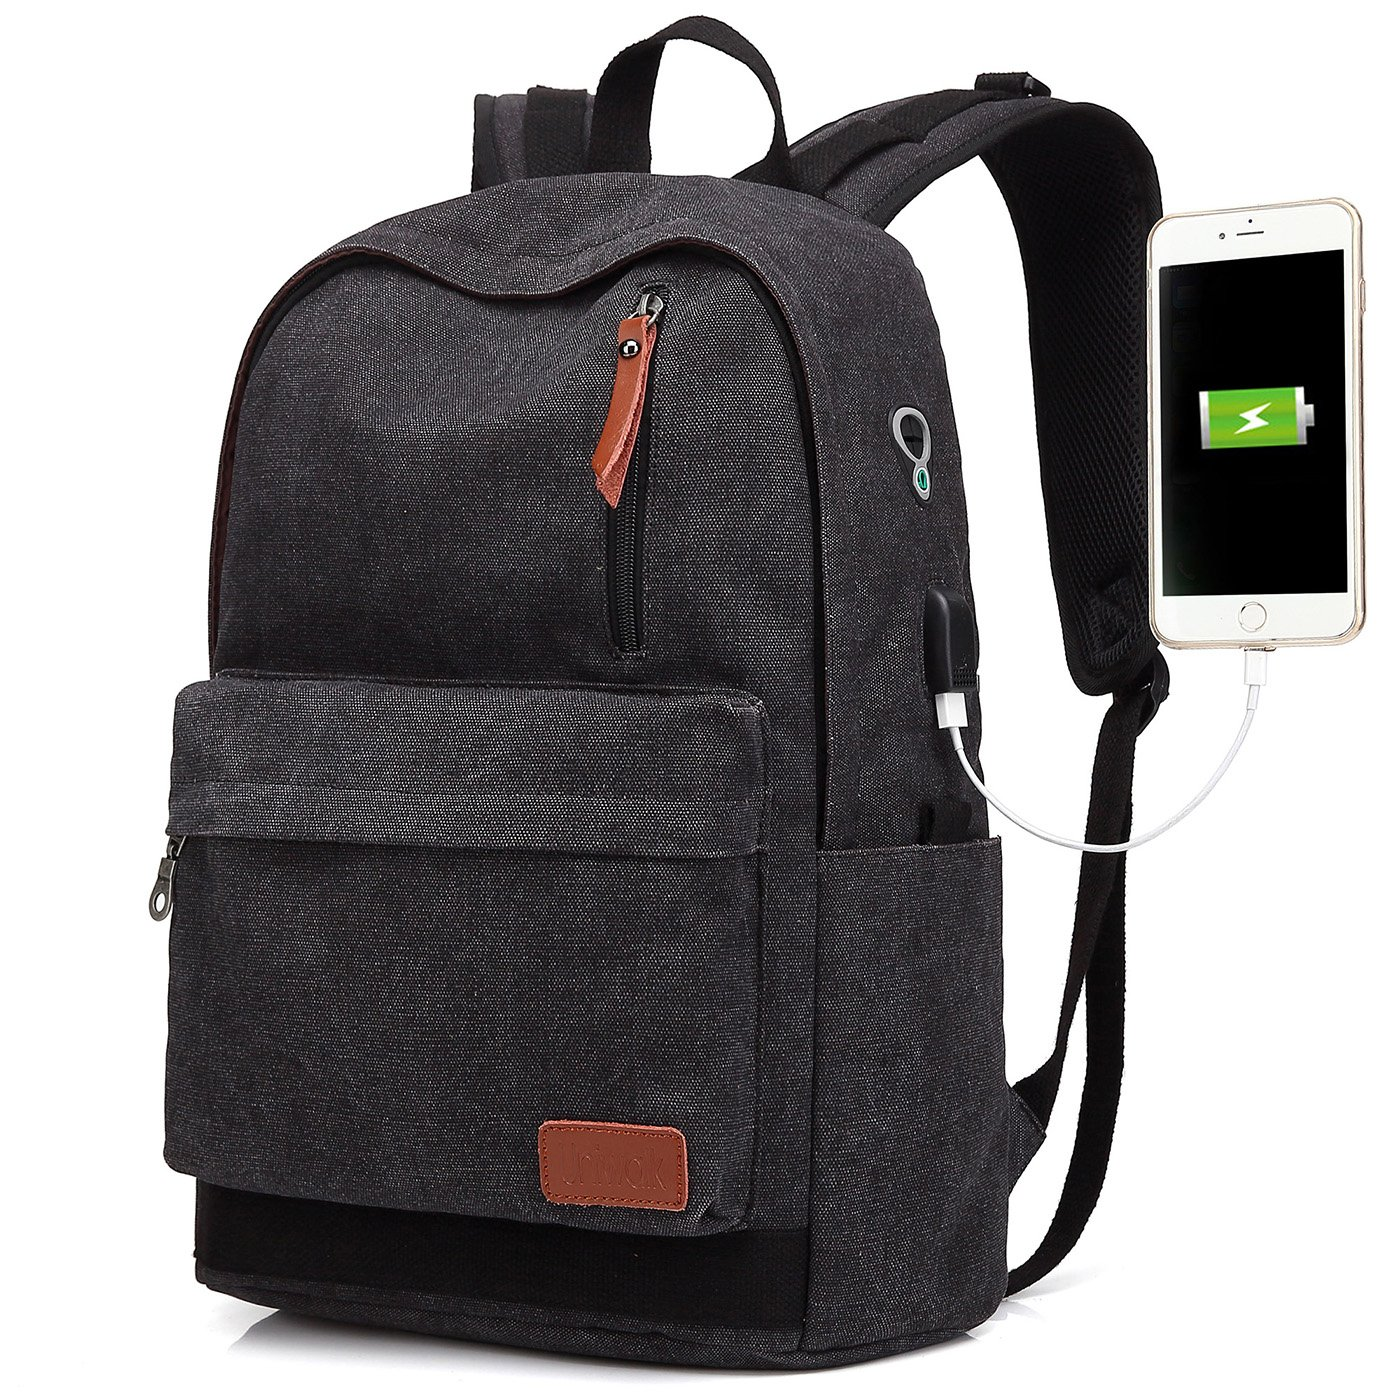 Canvas Laptop Backpack, Waterproof School Backpack With USB Charging Port For Men Women, Lightweight Anti-theft Travel Daypack College Student Rucksack Fits up to 15.6 inch Computer (Black)